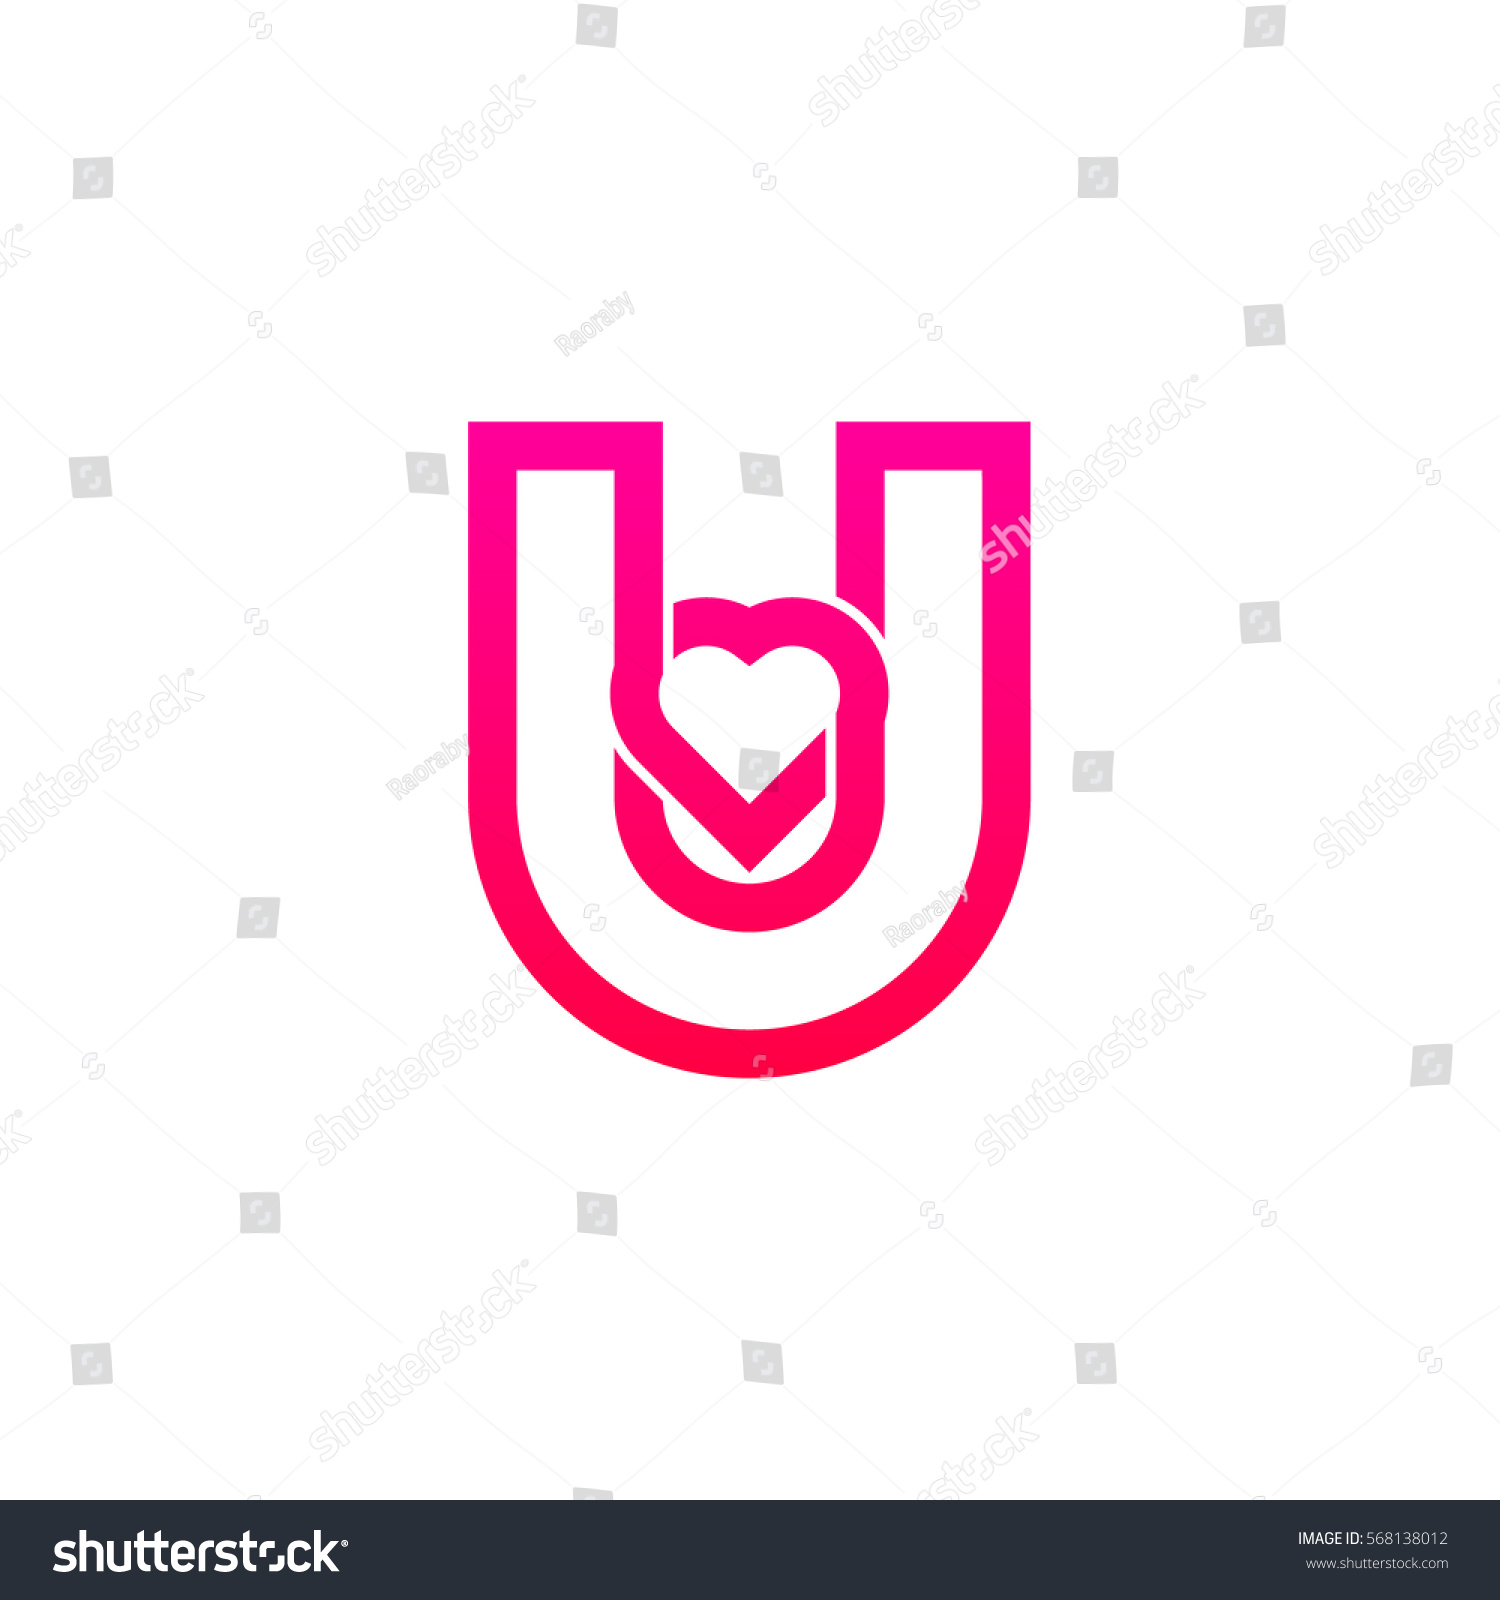 Letter U Heart Logo Pink Color Valentine Day Stock Vector (Royalty ...